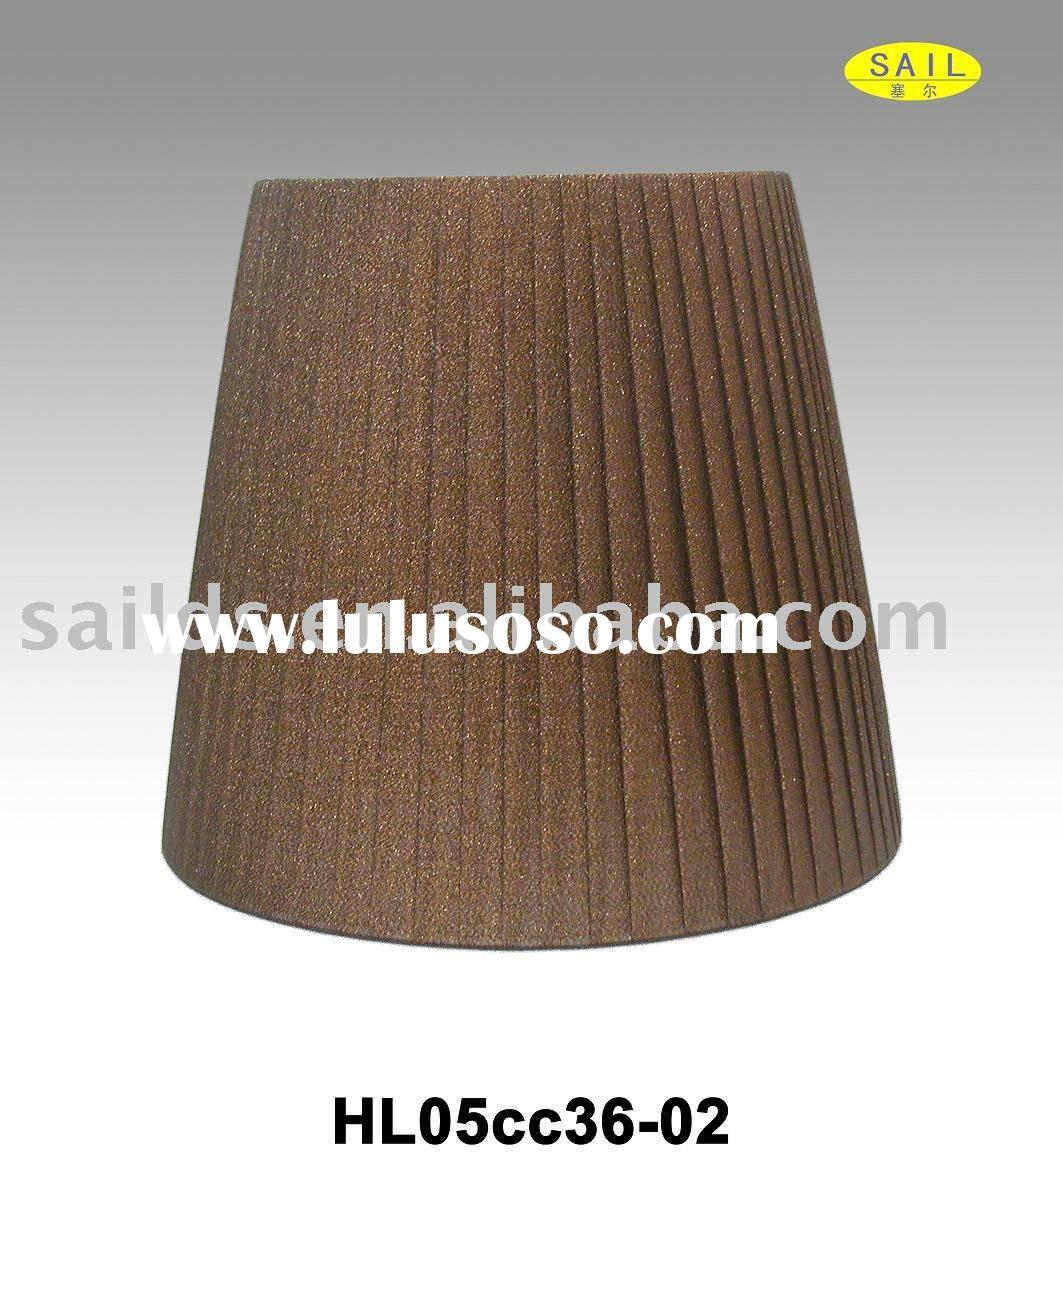 Clearance floor lamps lamp shade floor lamps shades on floor lamp shades floor lamp shades manufacturers in lulusoso com aloadofball Images